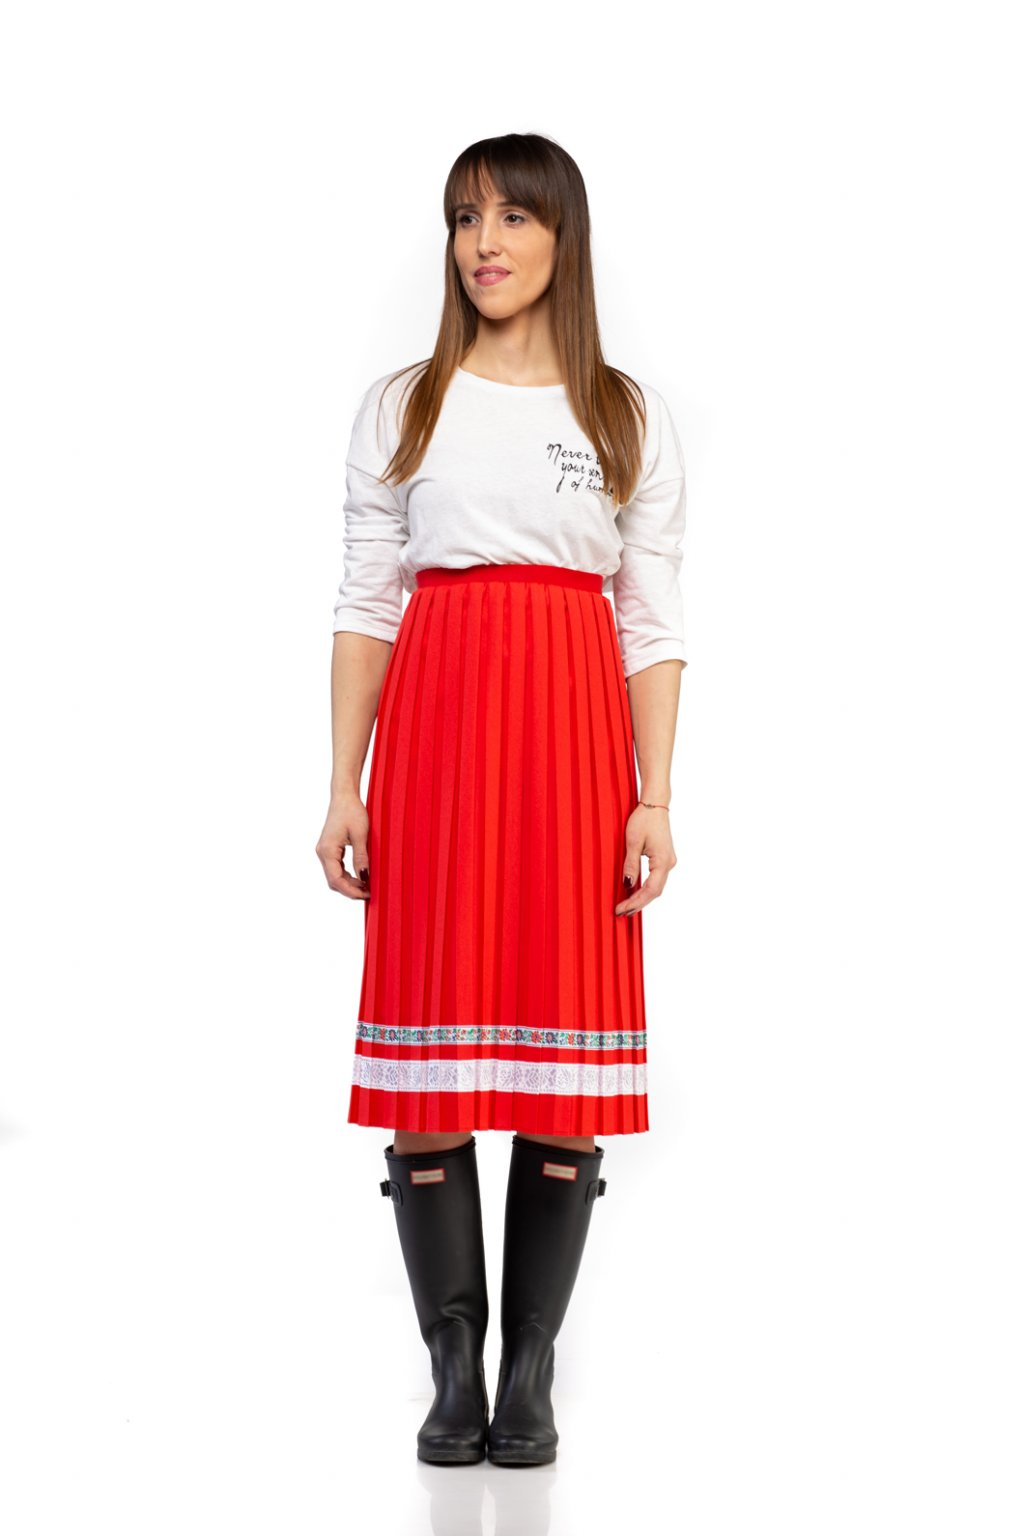 BUSINESS SUKŇA, BUSINESS SUKŇA, BUSINESS SKIRT, BUSINES, BASIC, CASUAL, BIZNIS PLISOVANÁ SUKŇA, PLEATING SKIRT, CASUAL SKIRT, PLEATED SKIRT, PLISSÉ,ČERVENÁ, ČERVENÁ SUKŇA, RED, RED SKIRT, FERARRI RED, BLOODY RED,MIDI, MIDI SKIRT, MIDI DĹŽKA, MIDI SUKŇA, SLOVAKIA